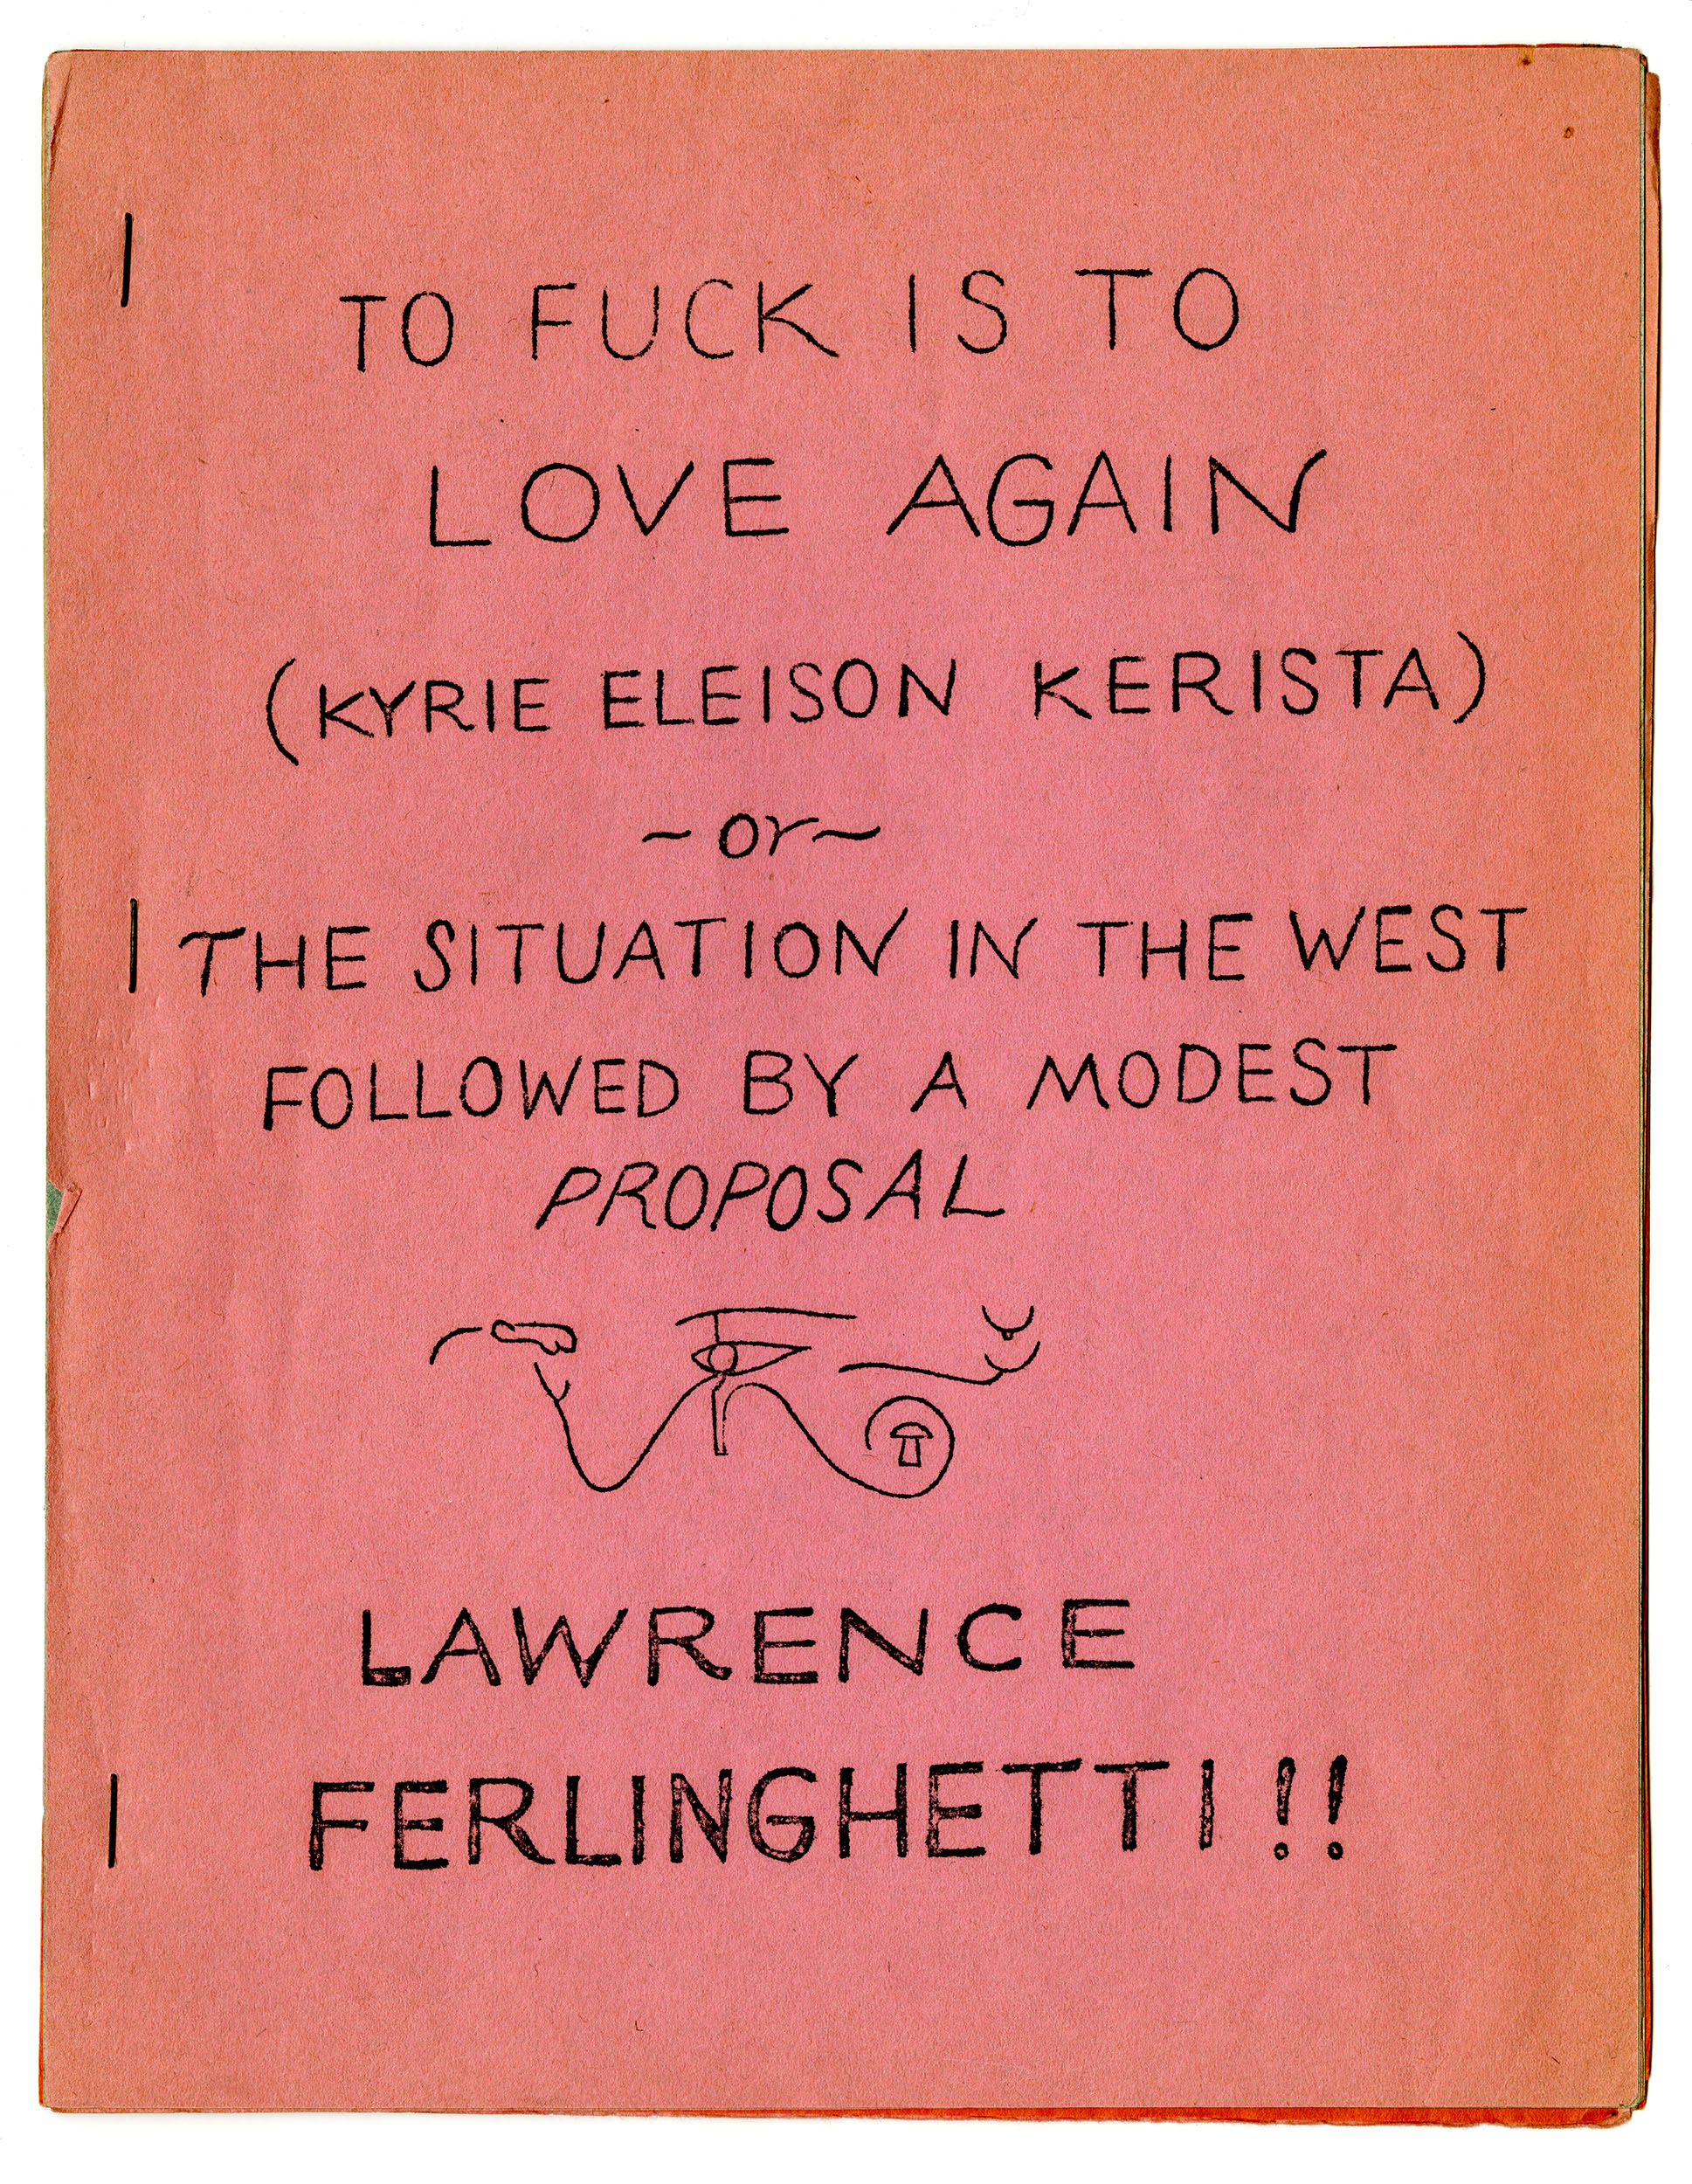 Lawrence Ferlinghetti. To Fuck Is To Love Again (Kyrie Eleison Kerista) or, The Situation In the West, Followed by a Holy Proposal, 1965